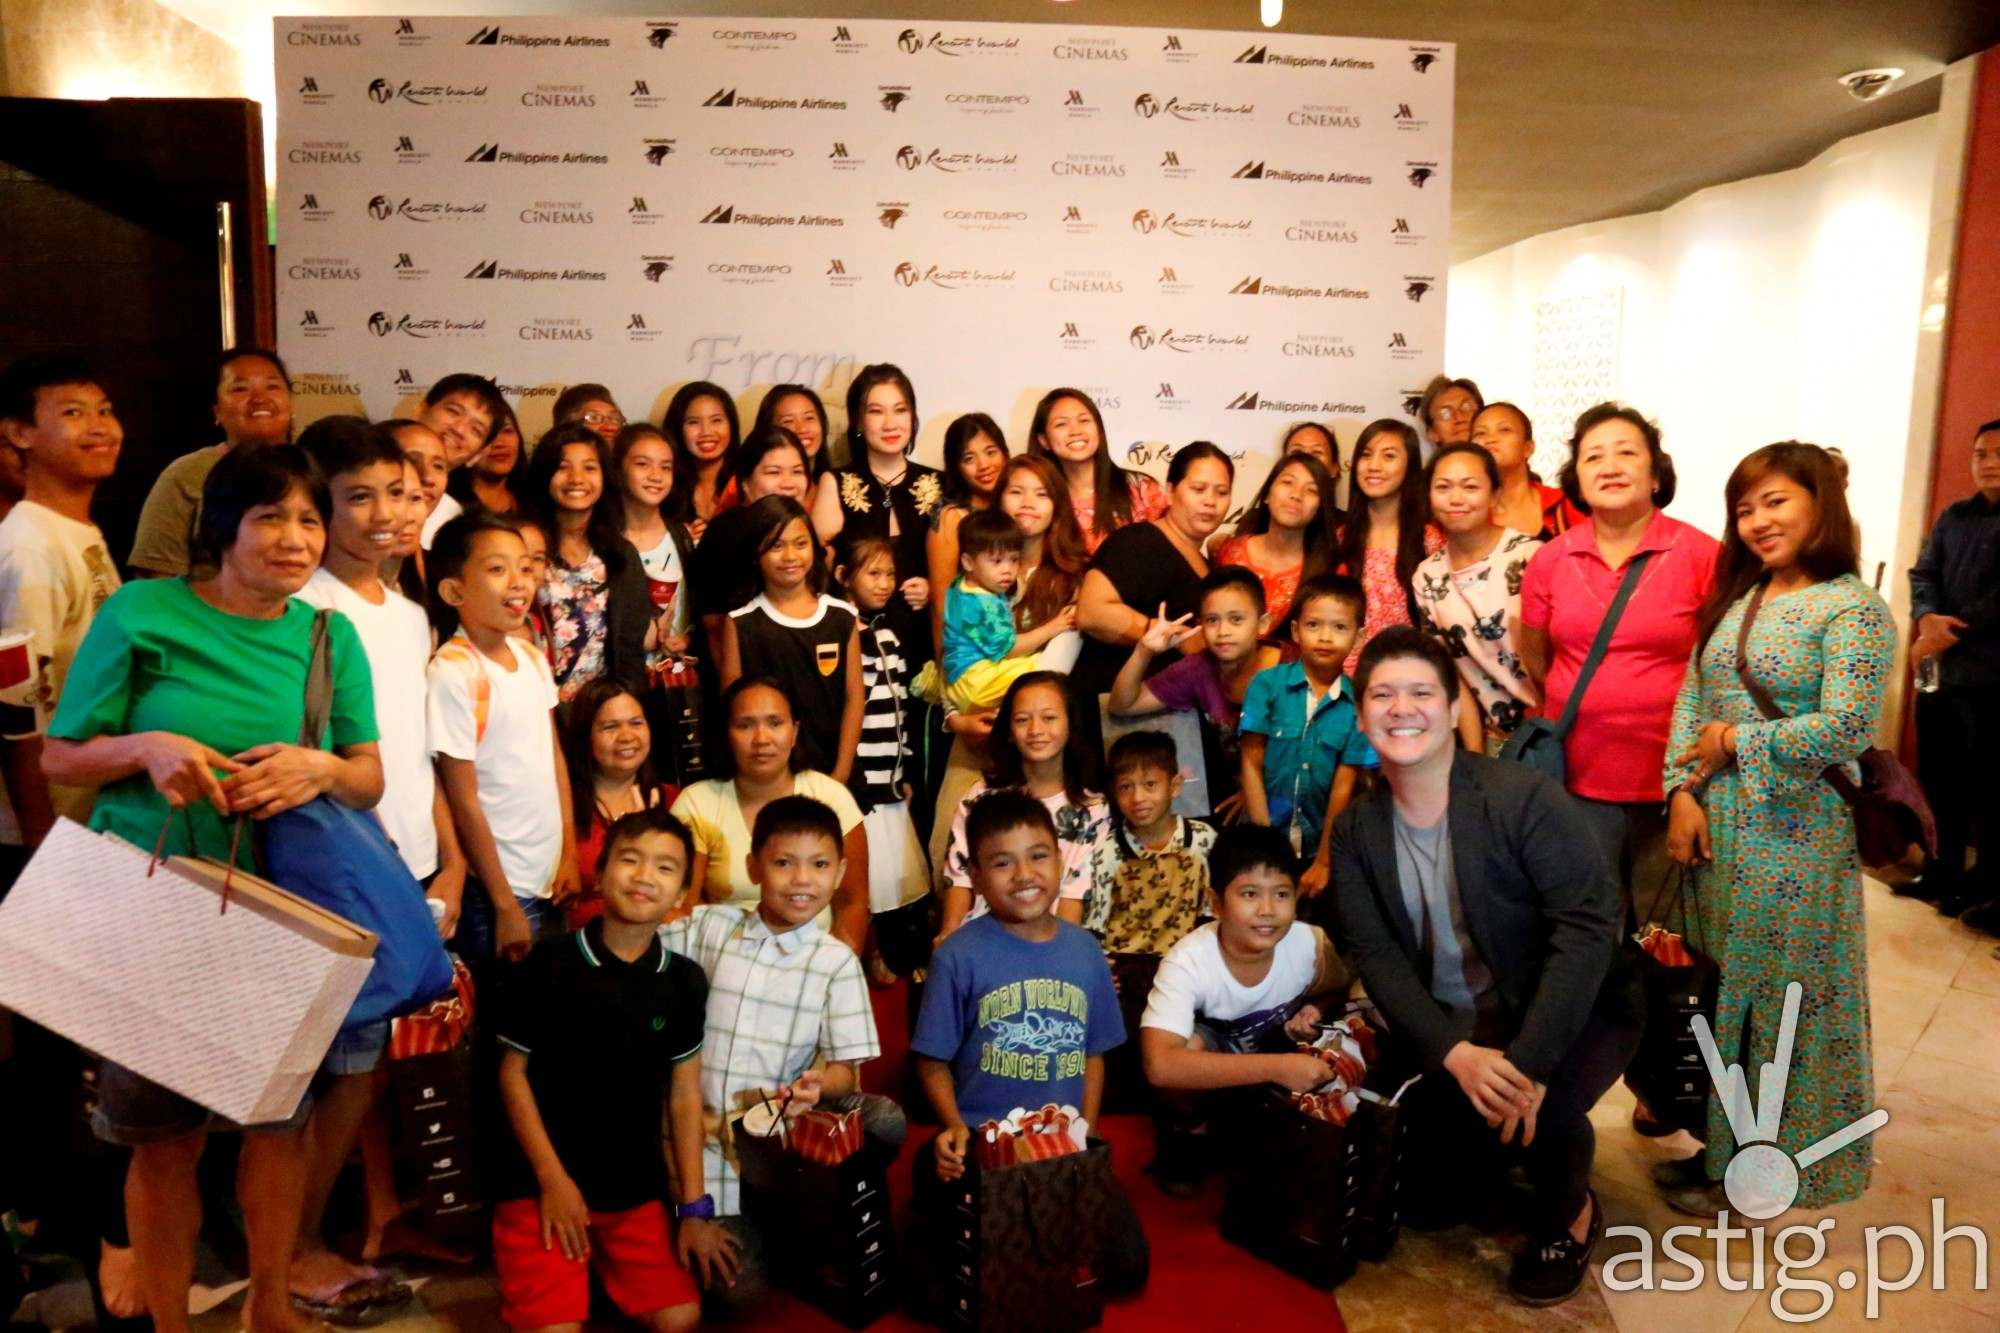 Resorts World Manila, Marriott Hotel Manila hold From The Heart (Galing sa Puso) documentary screening (3)